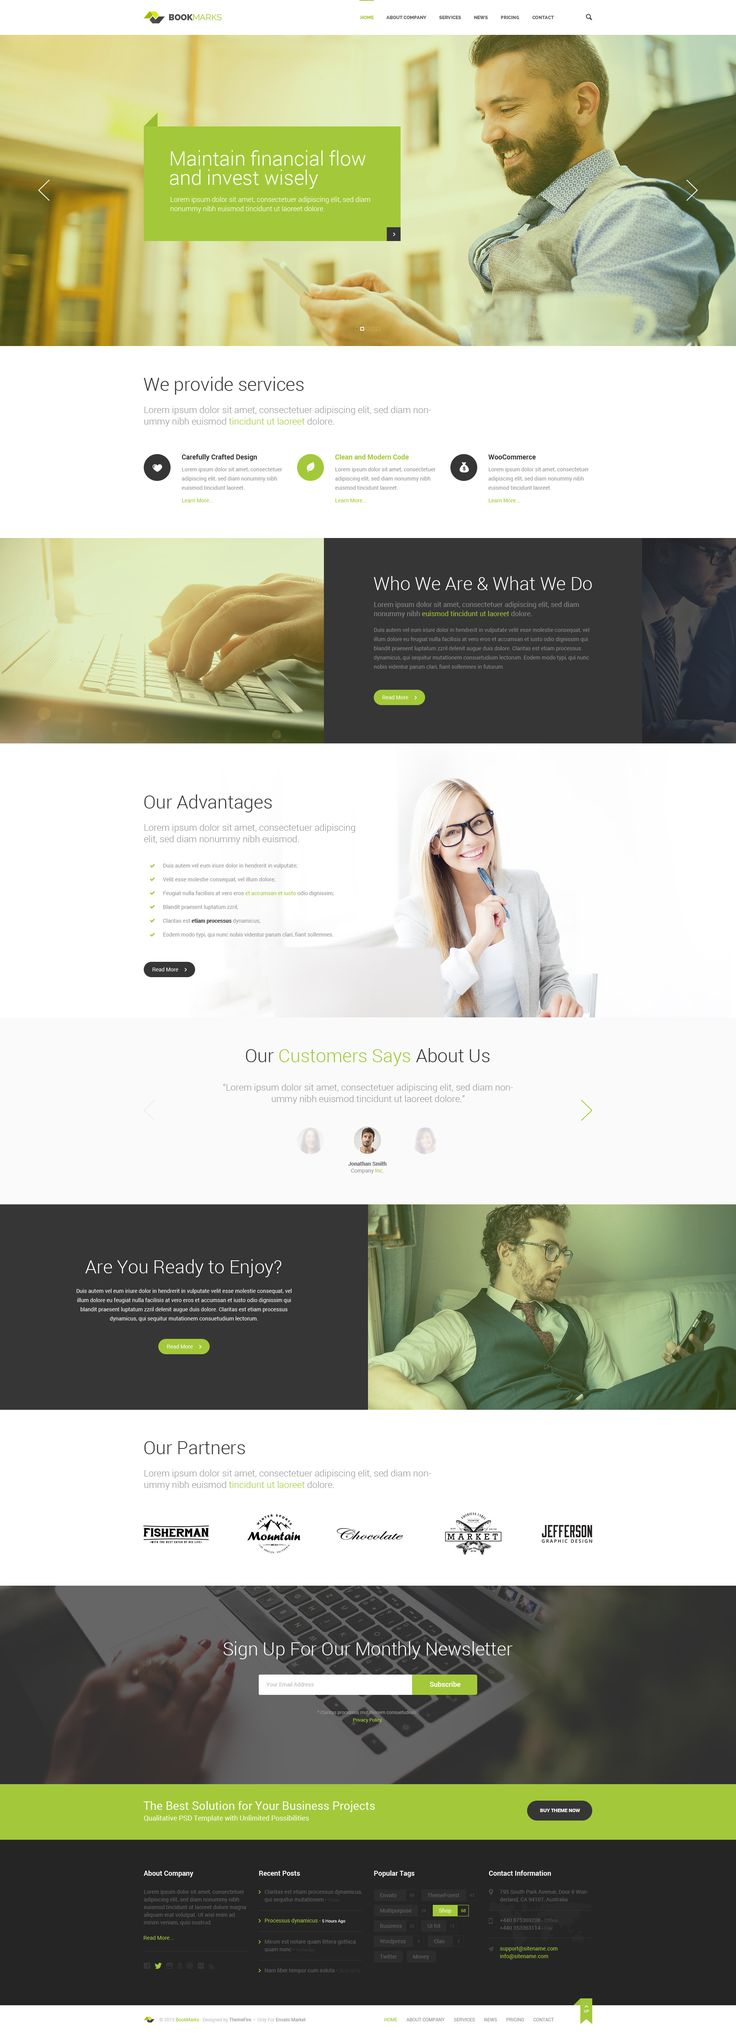 89 best OnePager Themes & Templates images on Pinterest | Charts ...